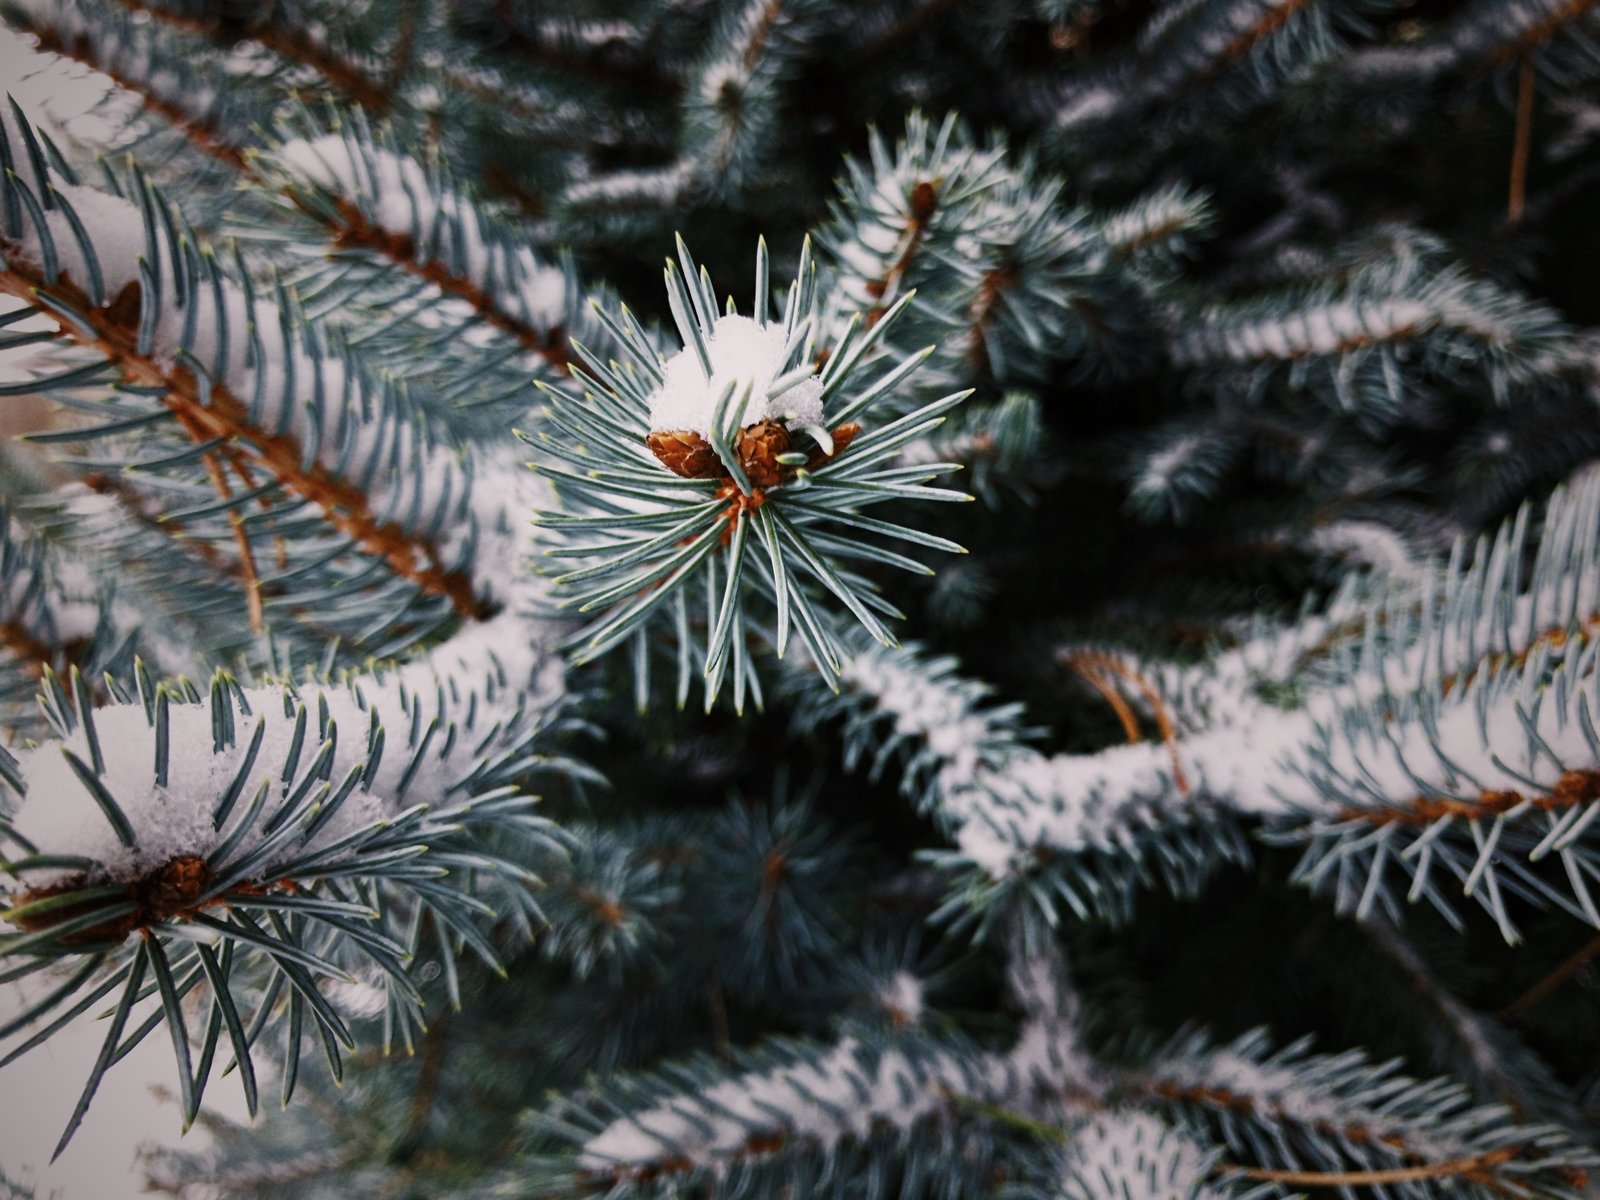 Snow rests gently on evergreen needles on a cold, winter day.  Photo 7 of 10 in VSCO RAW/X and Topo Designs